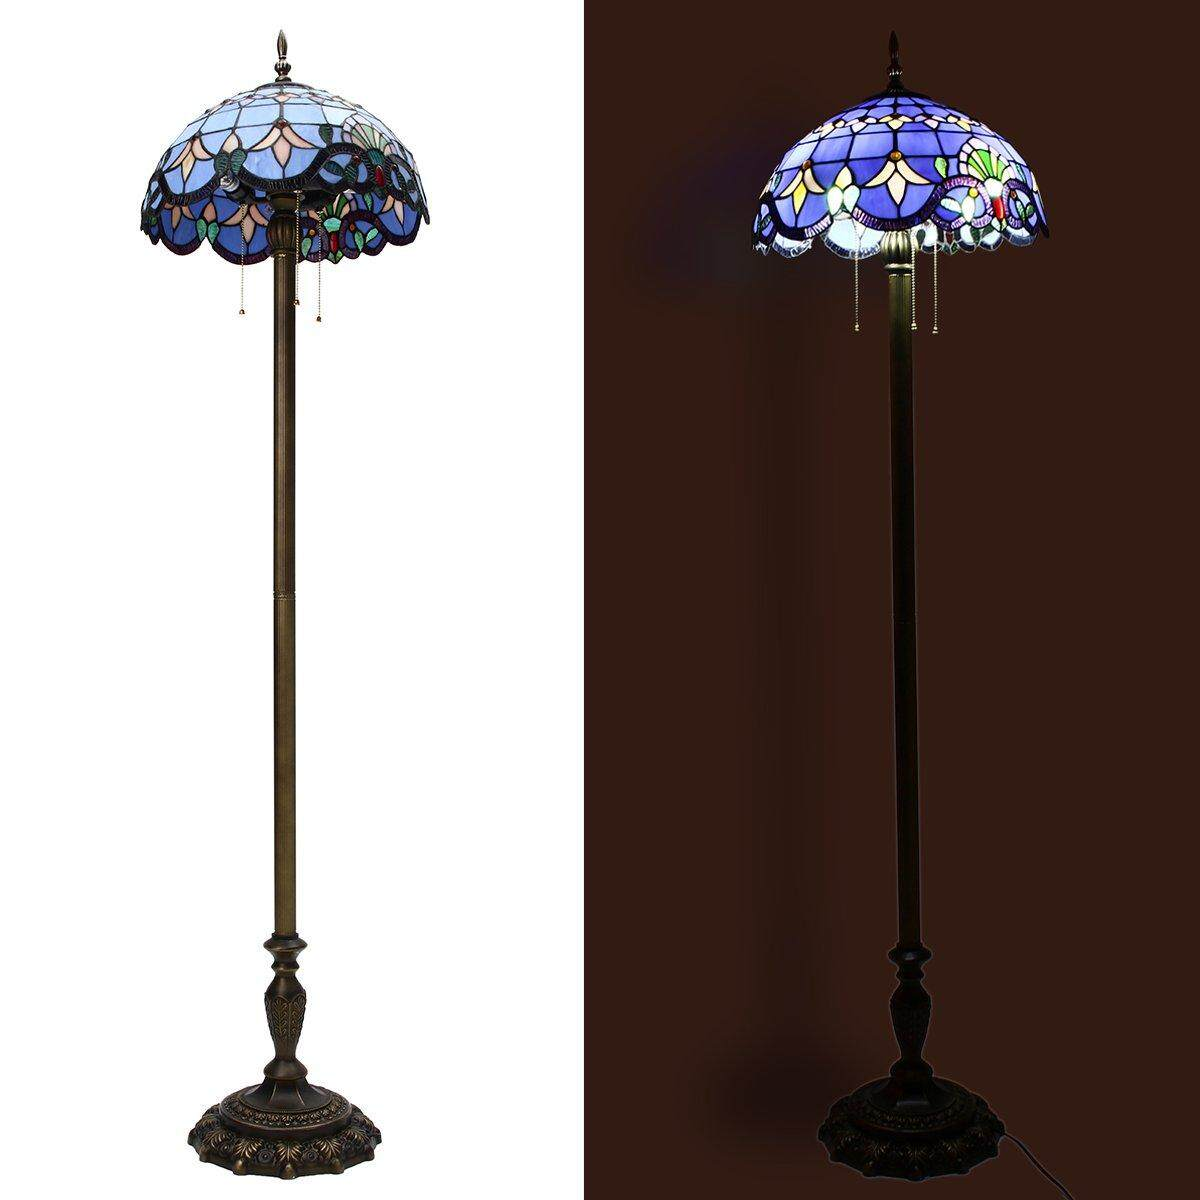 Floor Lamp Victorian Style Vintage Stained Glass Antique Led Light Home Decor By Moonbeam.